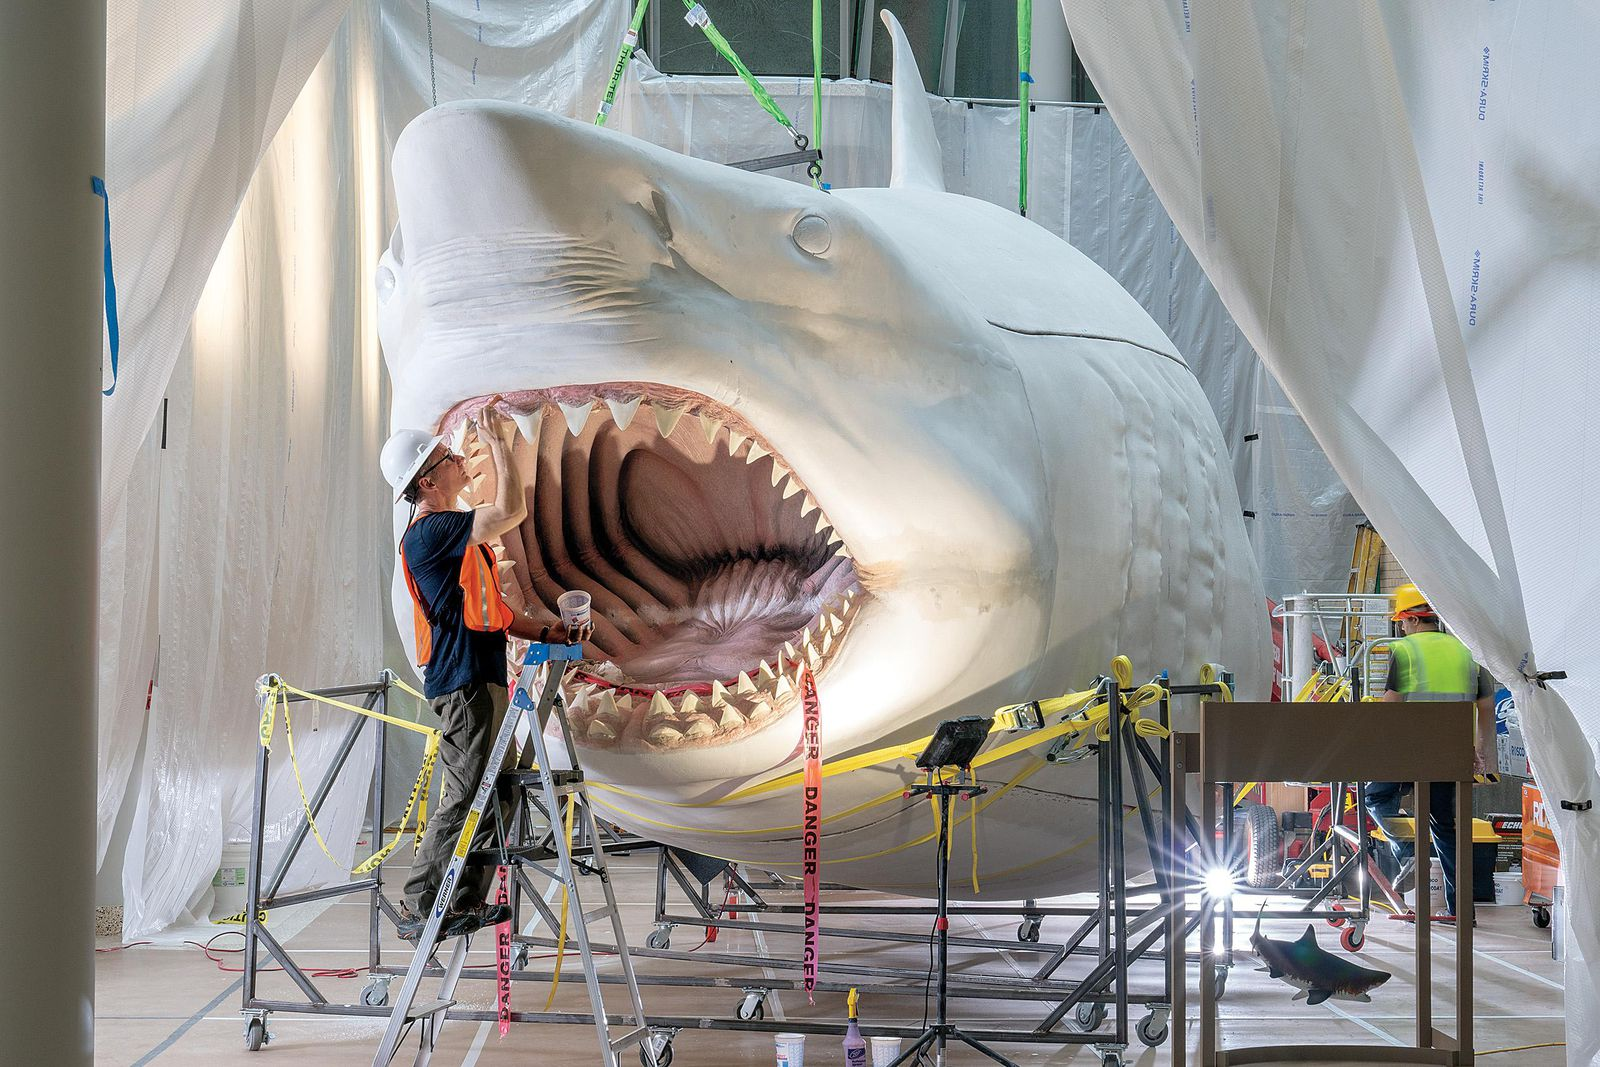 Reimagining The Megalodon The World S Most Terrifying Sea